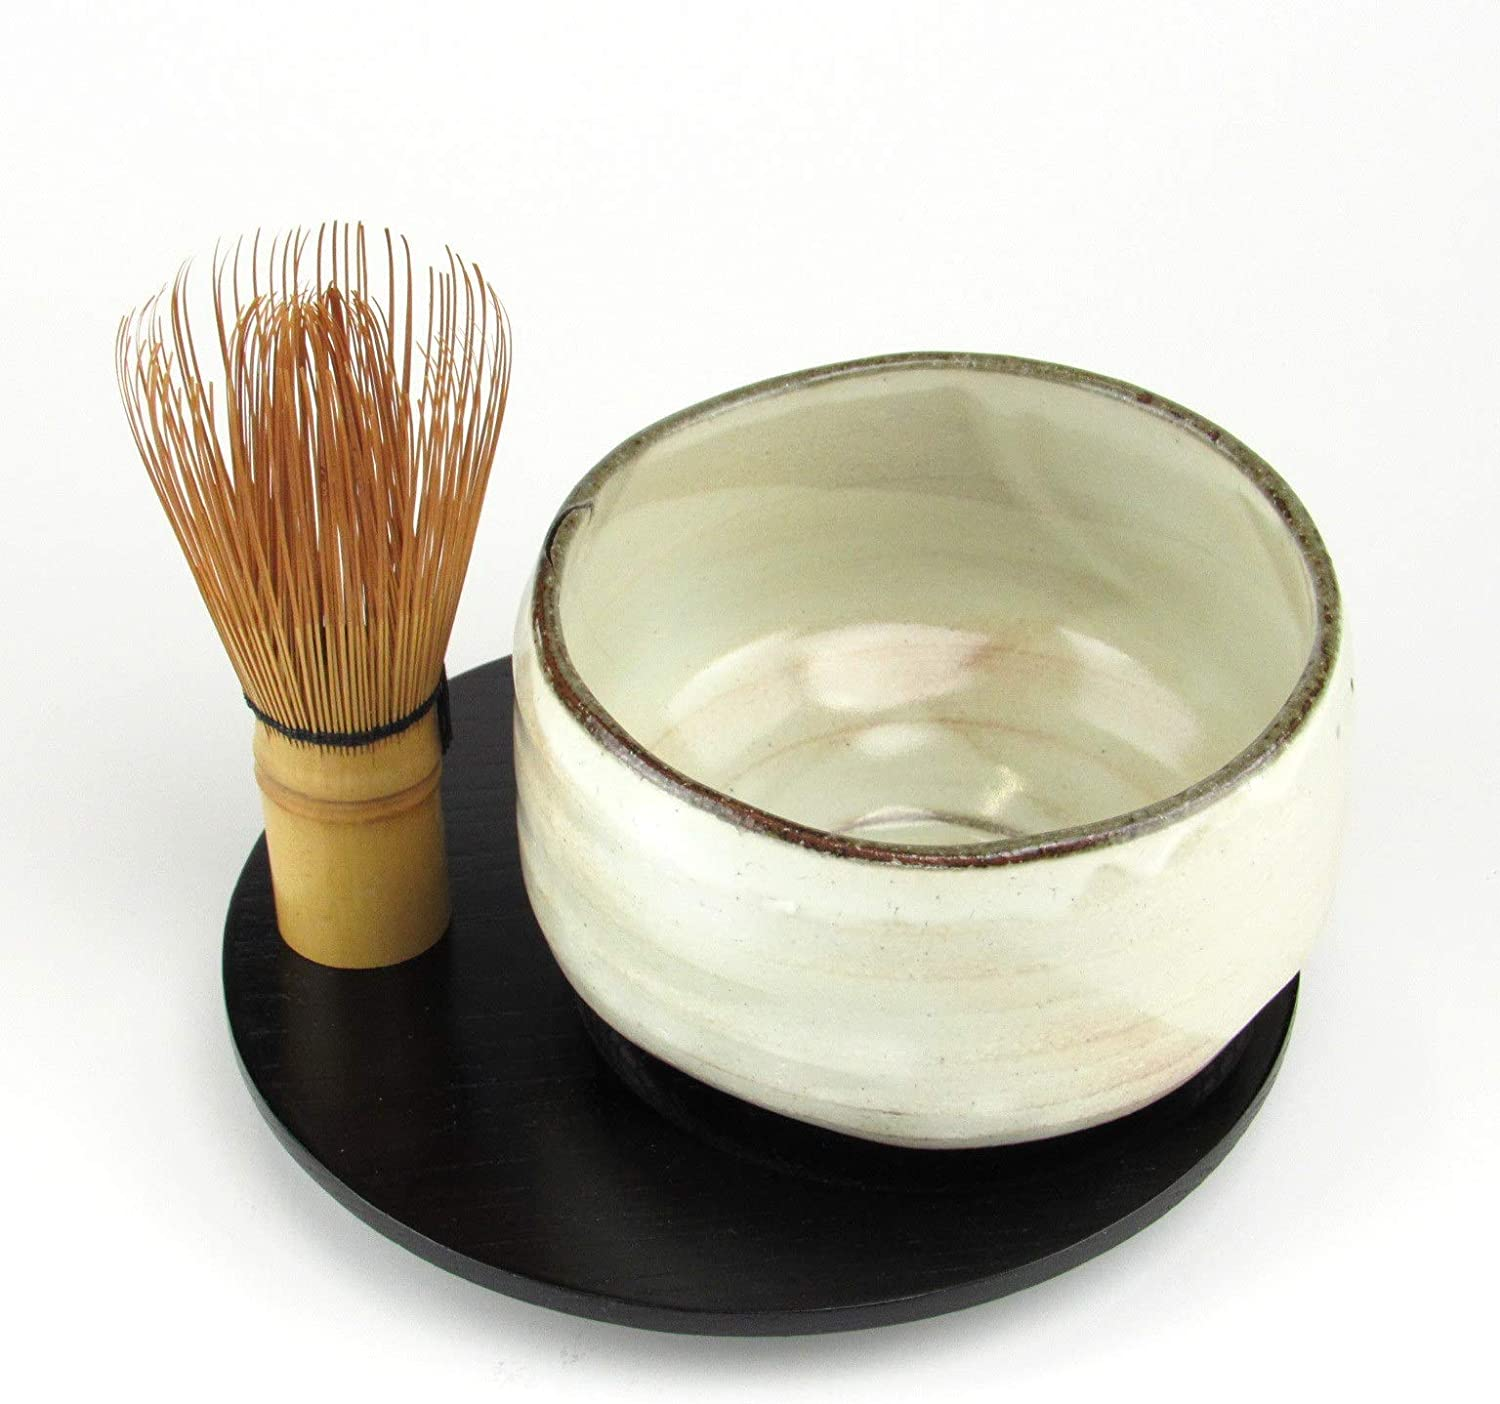 Handcrafted Porcelain Matcha Set Brown Chawan Green Tea Bowl Matcha Whisk and Spoon